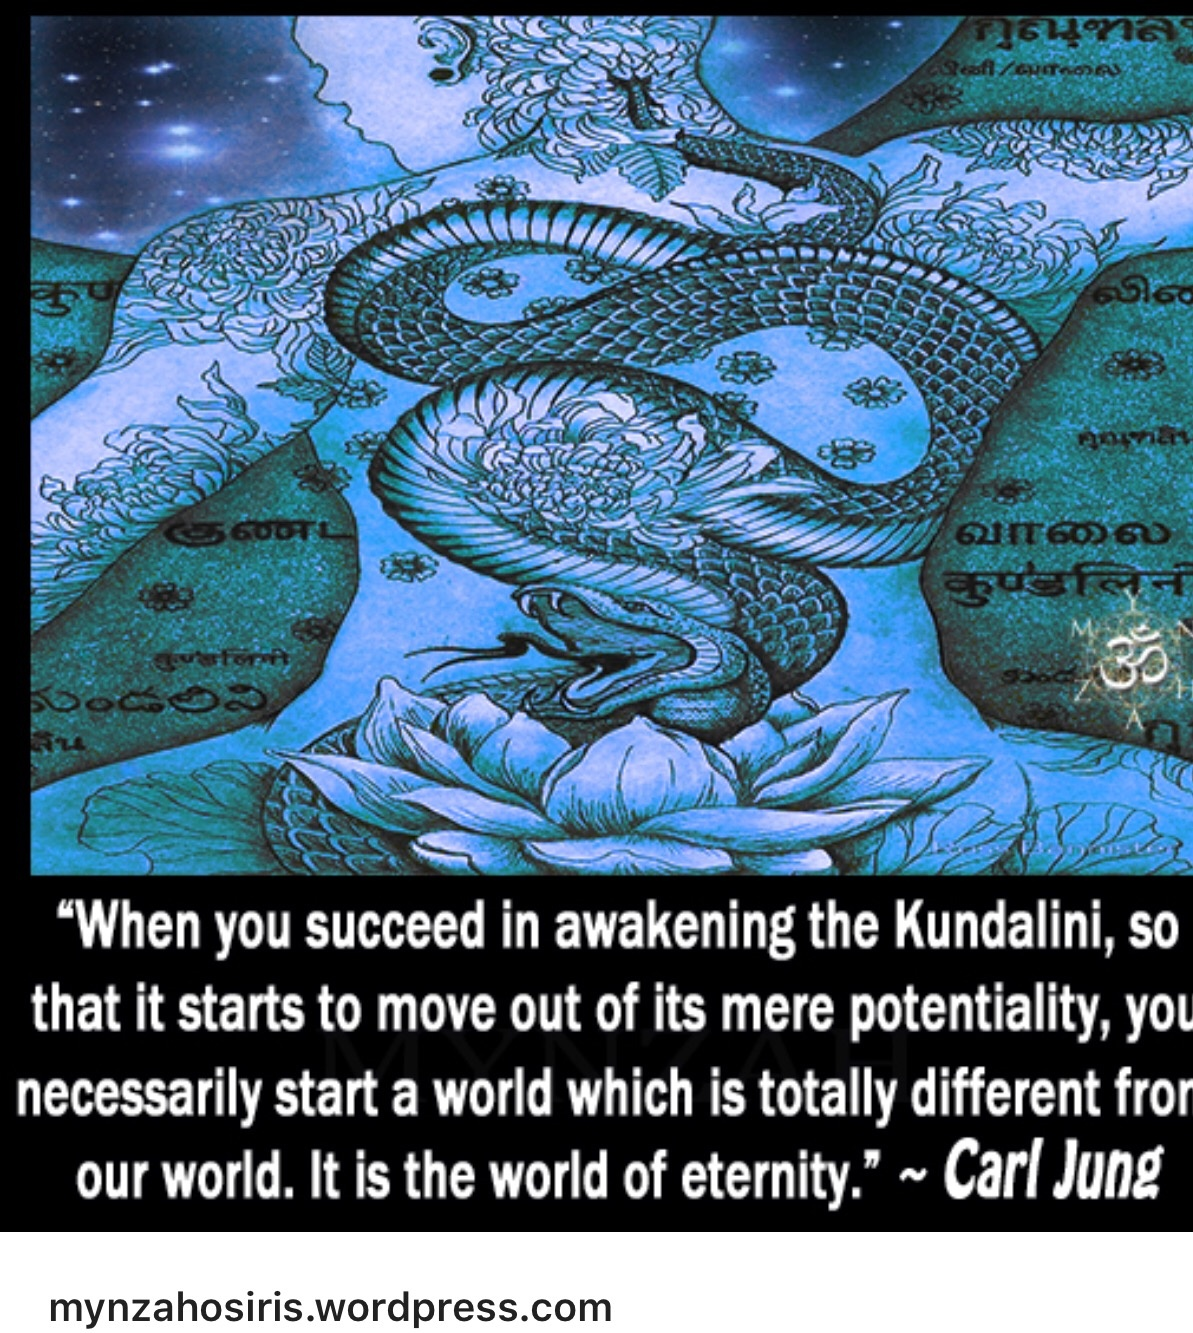 Is one chosen to be awaken? Is Kundalini up to free will, or is it